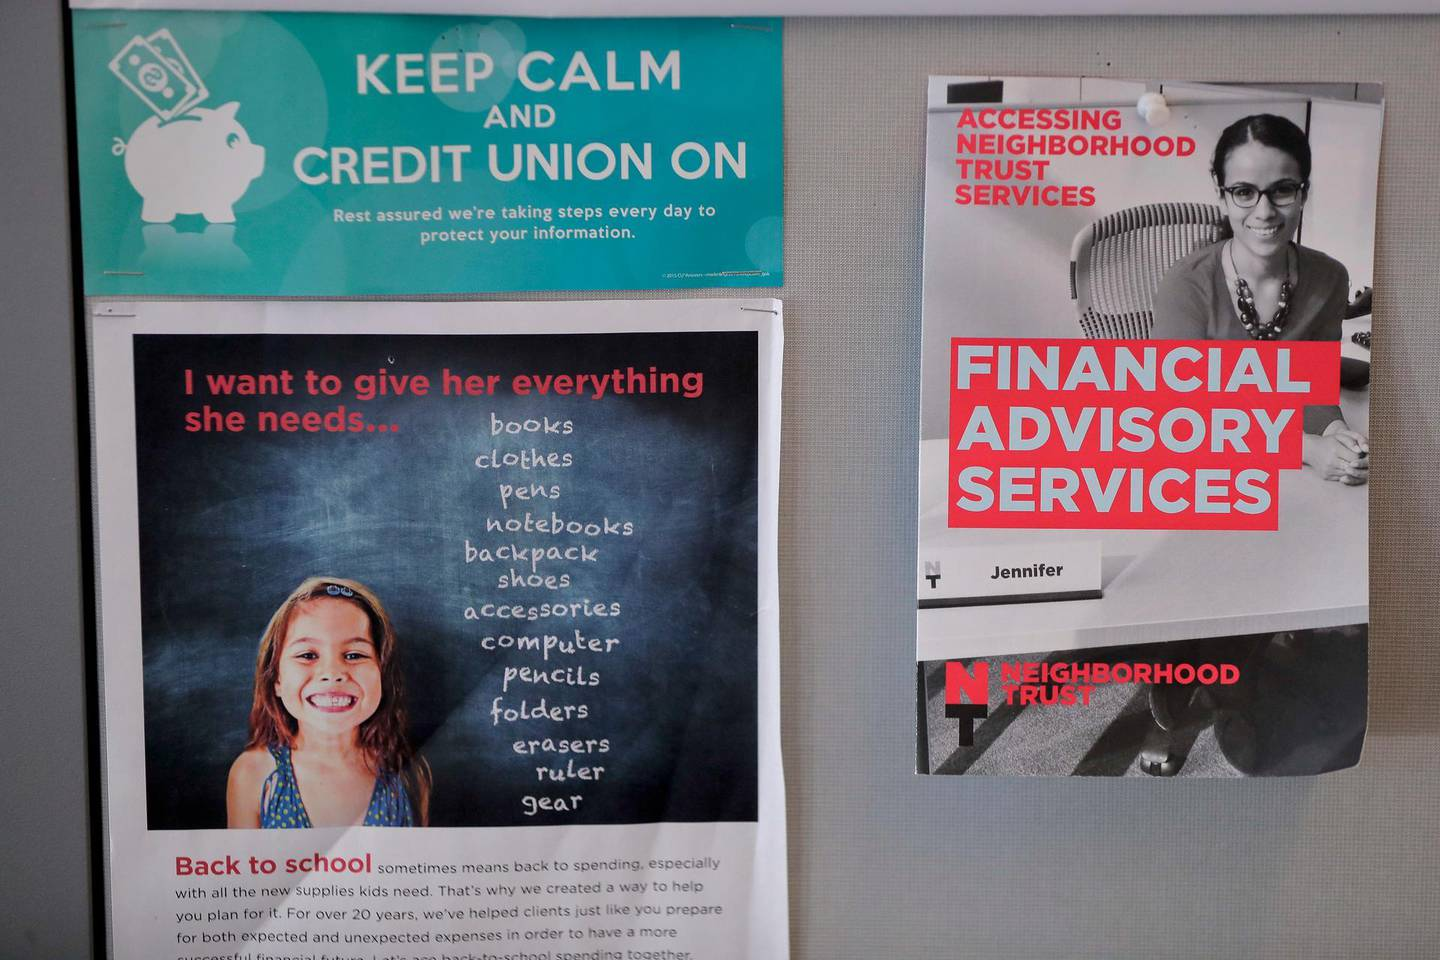 In this May 24, 2018, photo, fliers offering financial advising services to clients hang in a cubicle at the Neighborhood Trust Federal Credit Union in Washington Heights in New York. The credit union is offering services through a developing partnership with Finhabits, a bilingual digital platform designed to make savings and investment accessible for Hispanics. (AP Photo/Julie Jacobson)